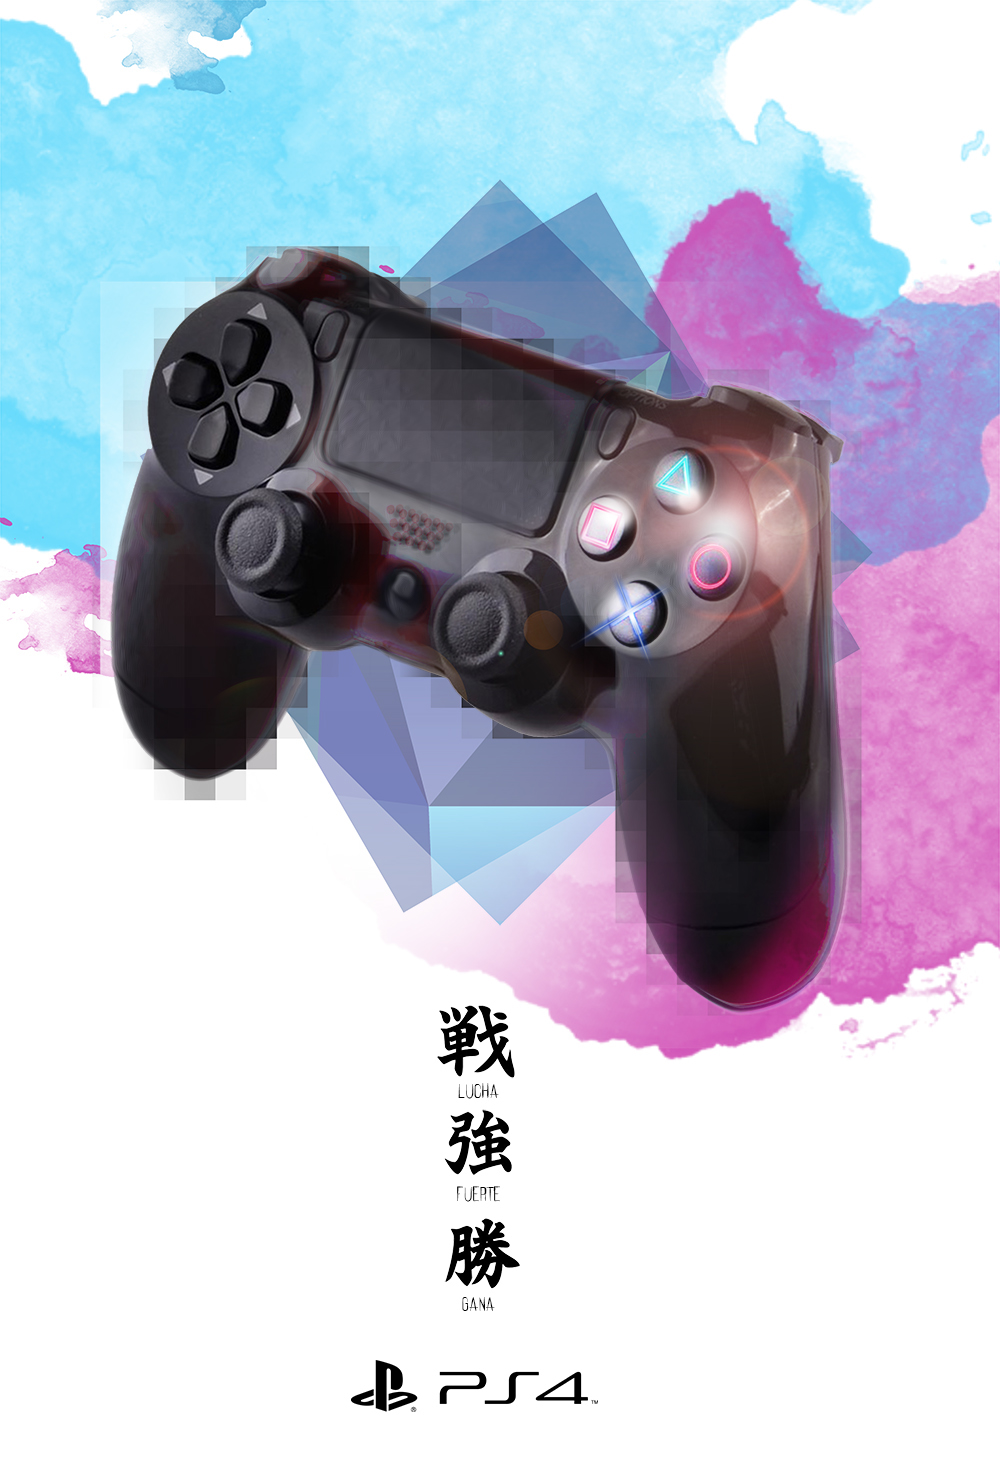 playstation poster